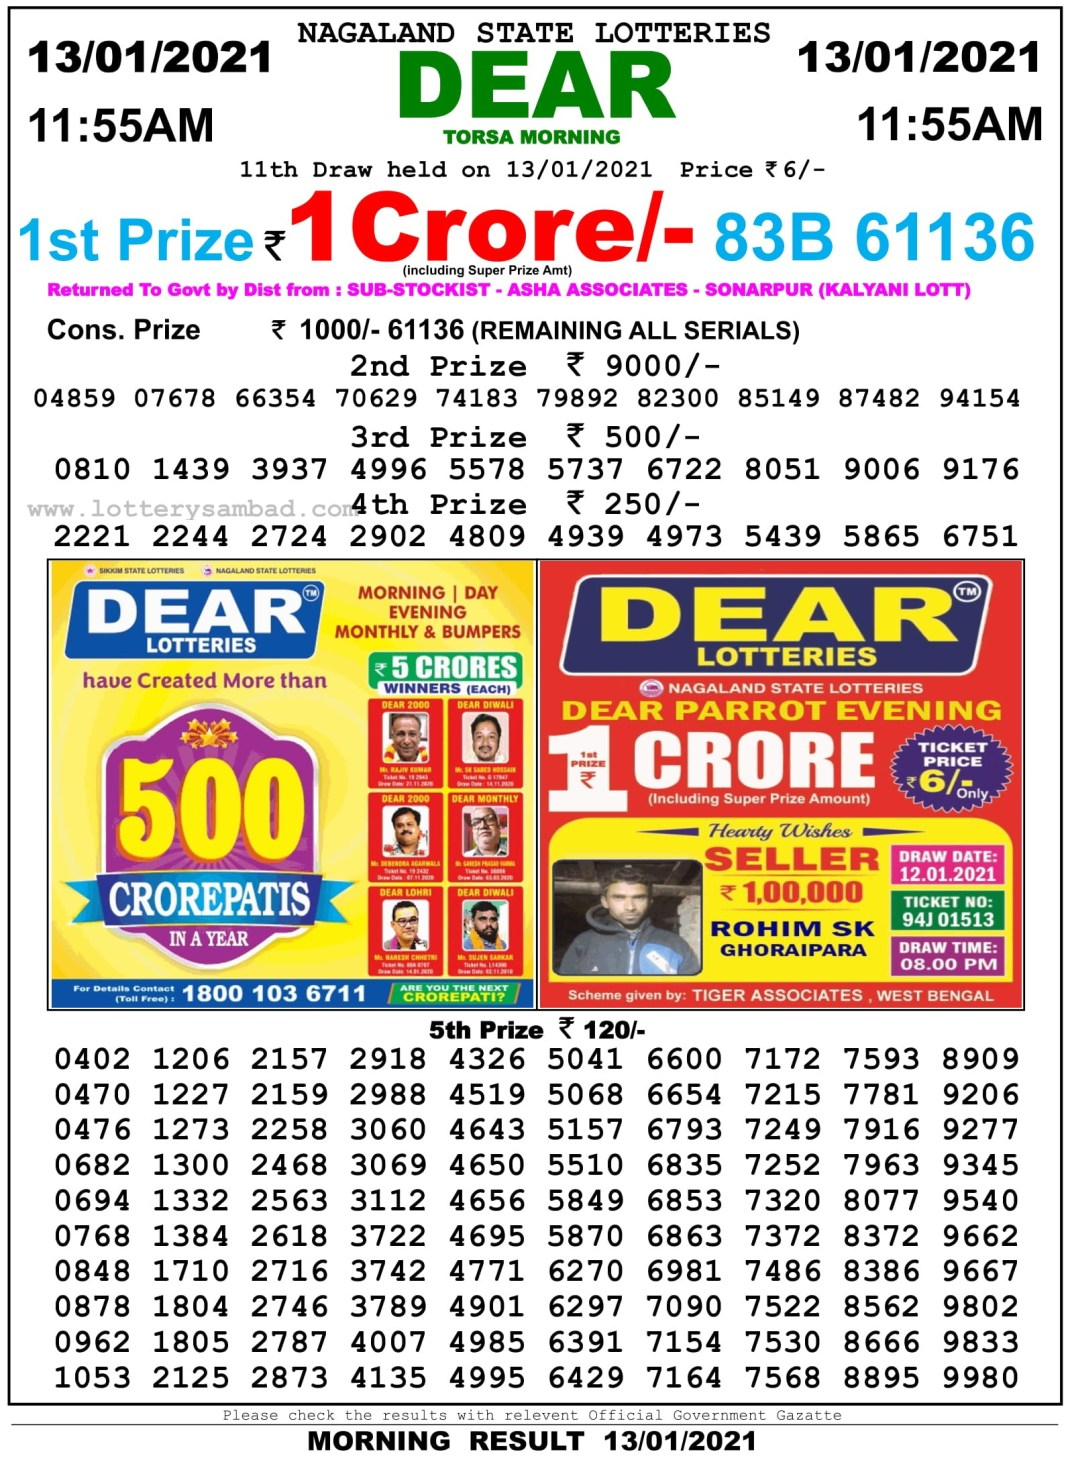 Sikkim State Lottery Result 11.55 AM 13.1.2021